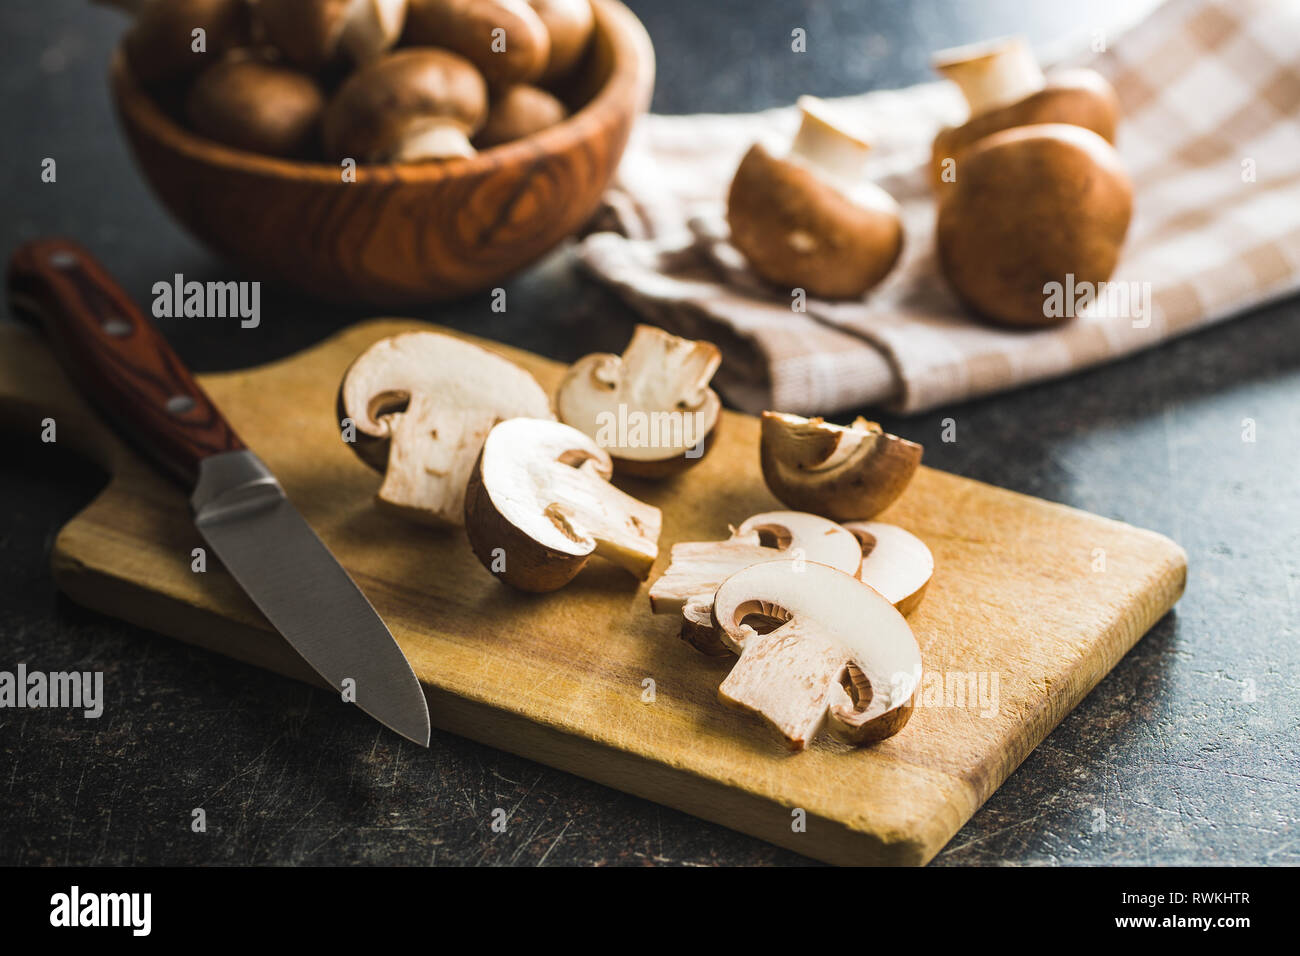 Fresh sliced champignon mushrooms on cutting board. Stock Photo